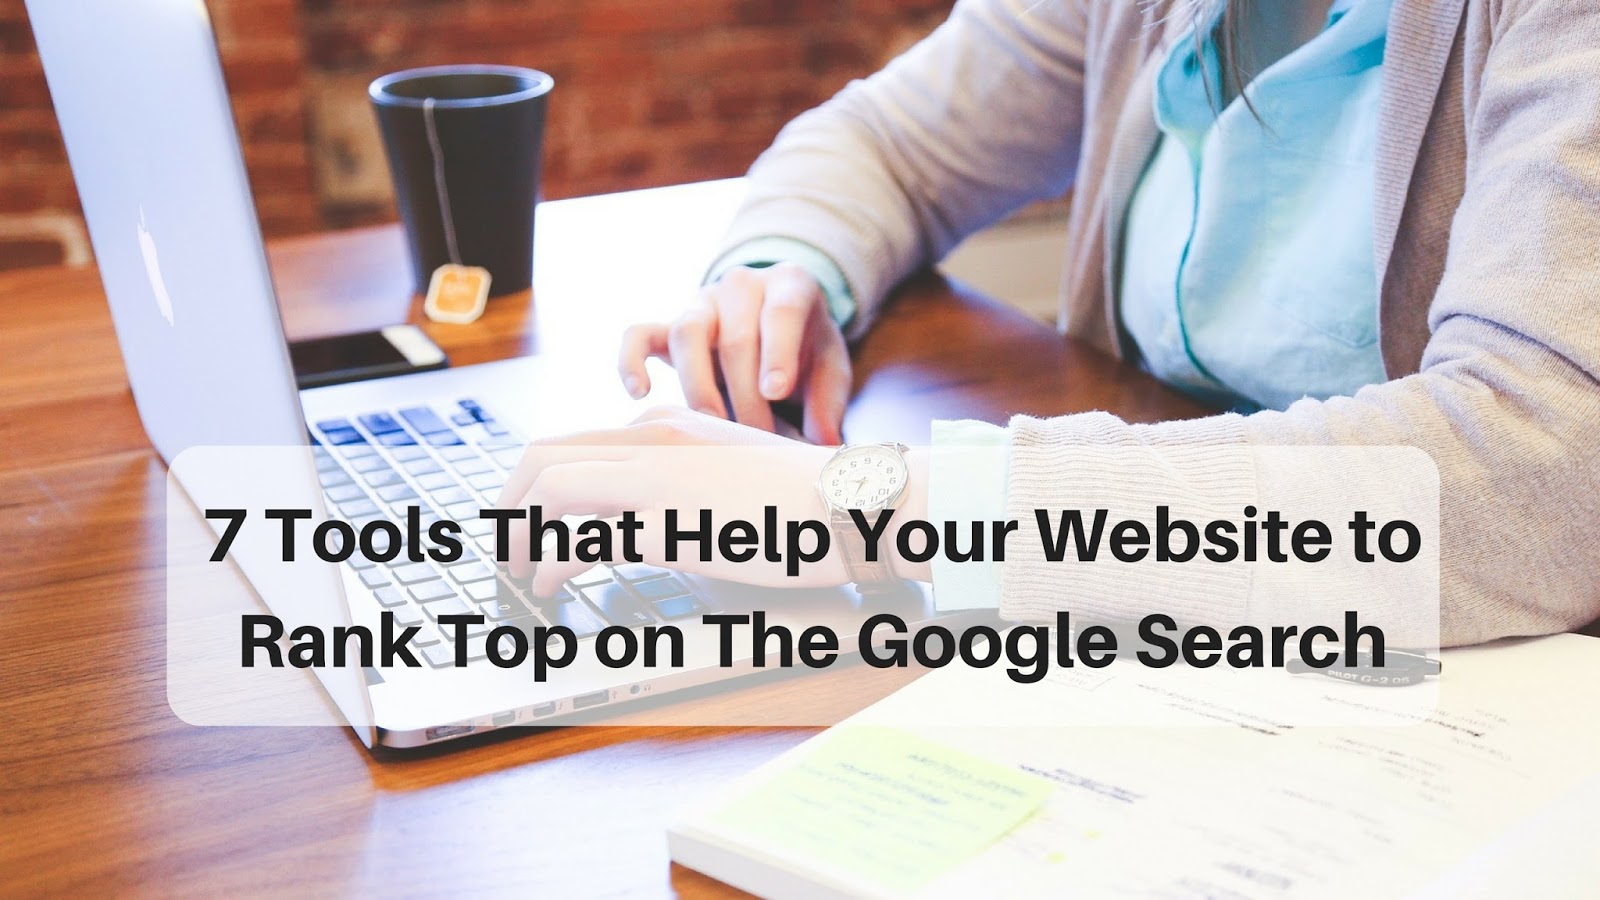 how to rank your website top on google search, which tools help your blog take your website top on google serach